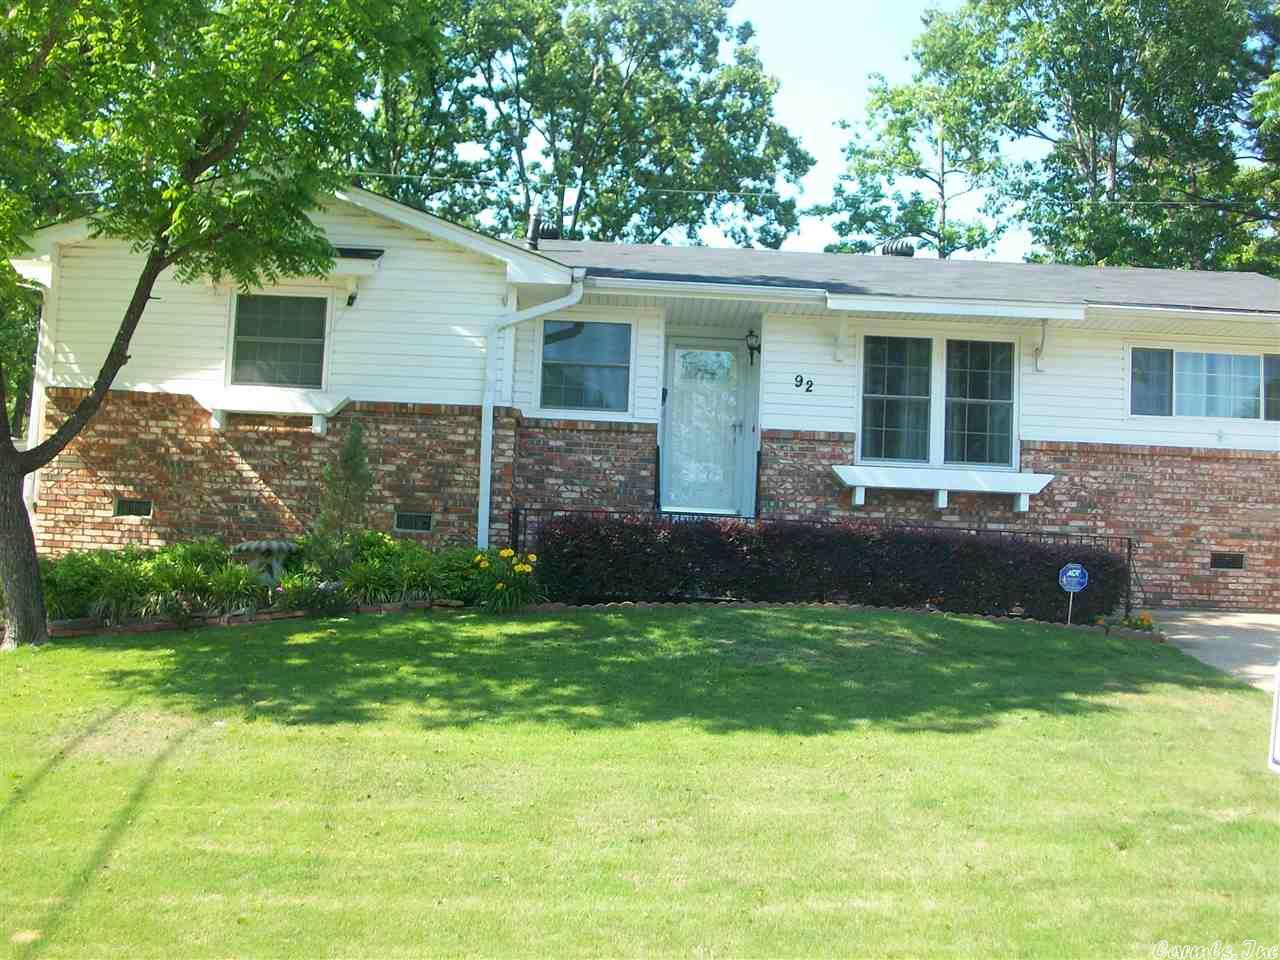 92 W Windsor Drive, Little Rock, AR 72209